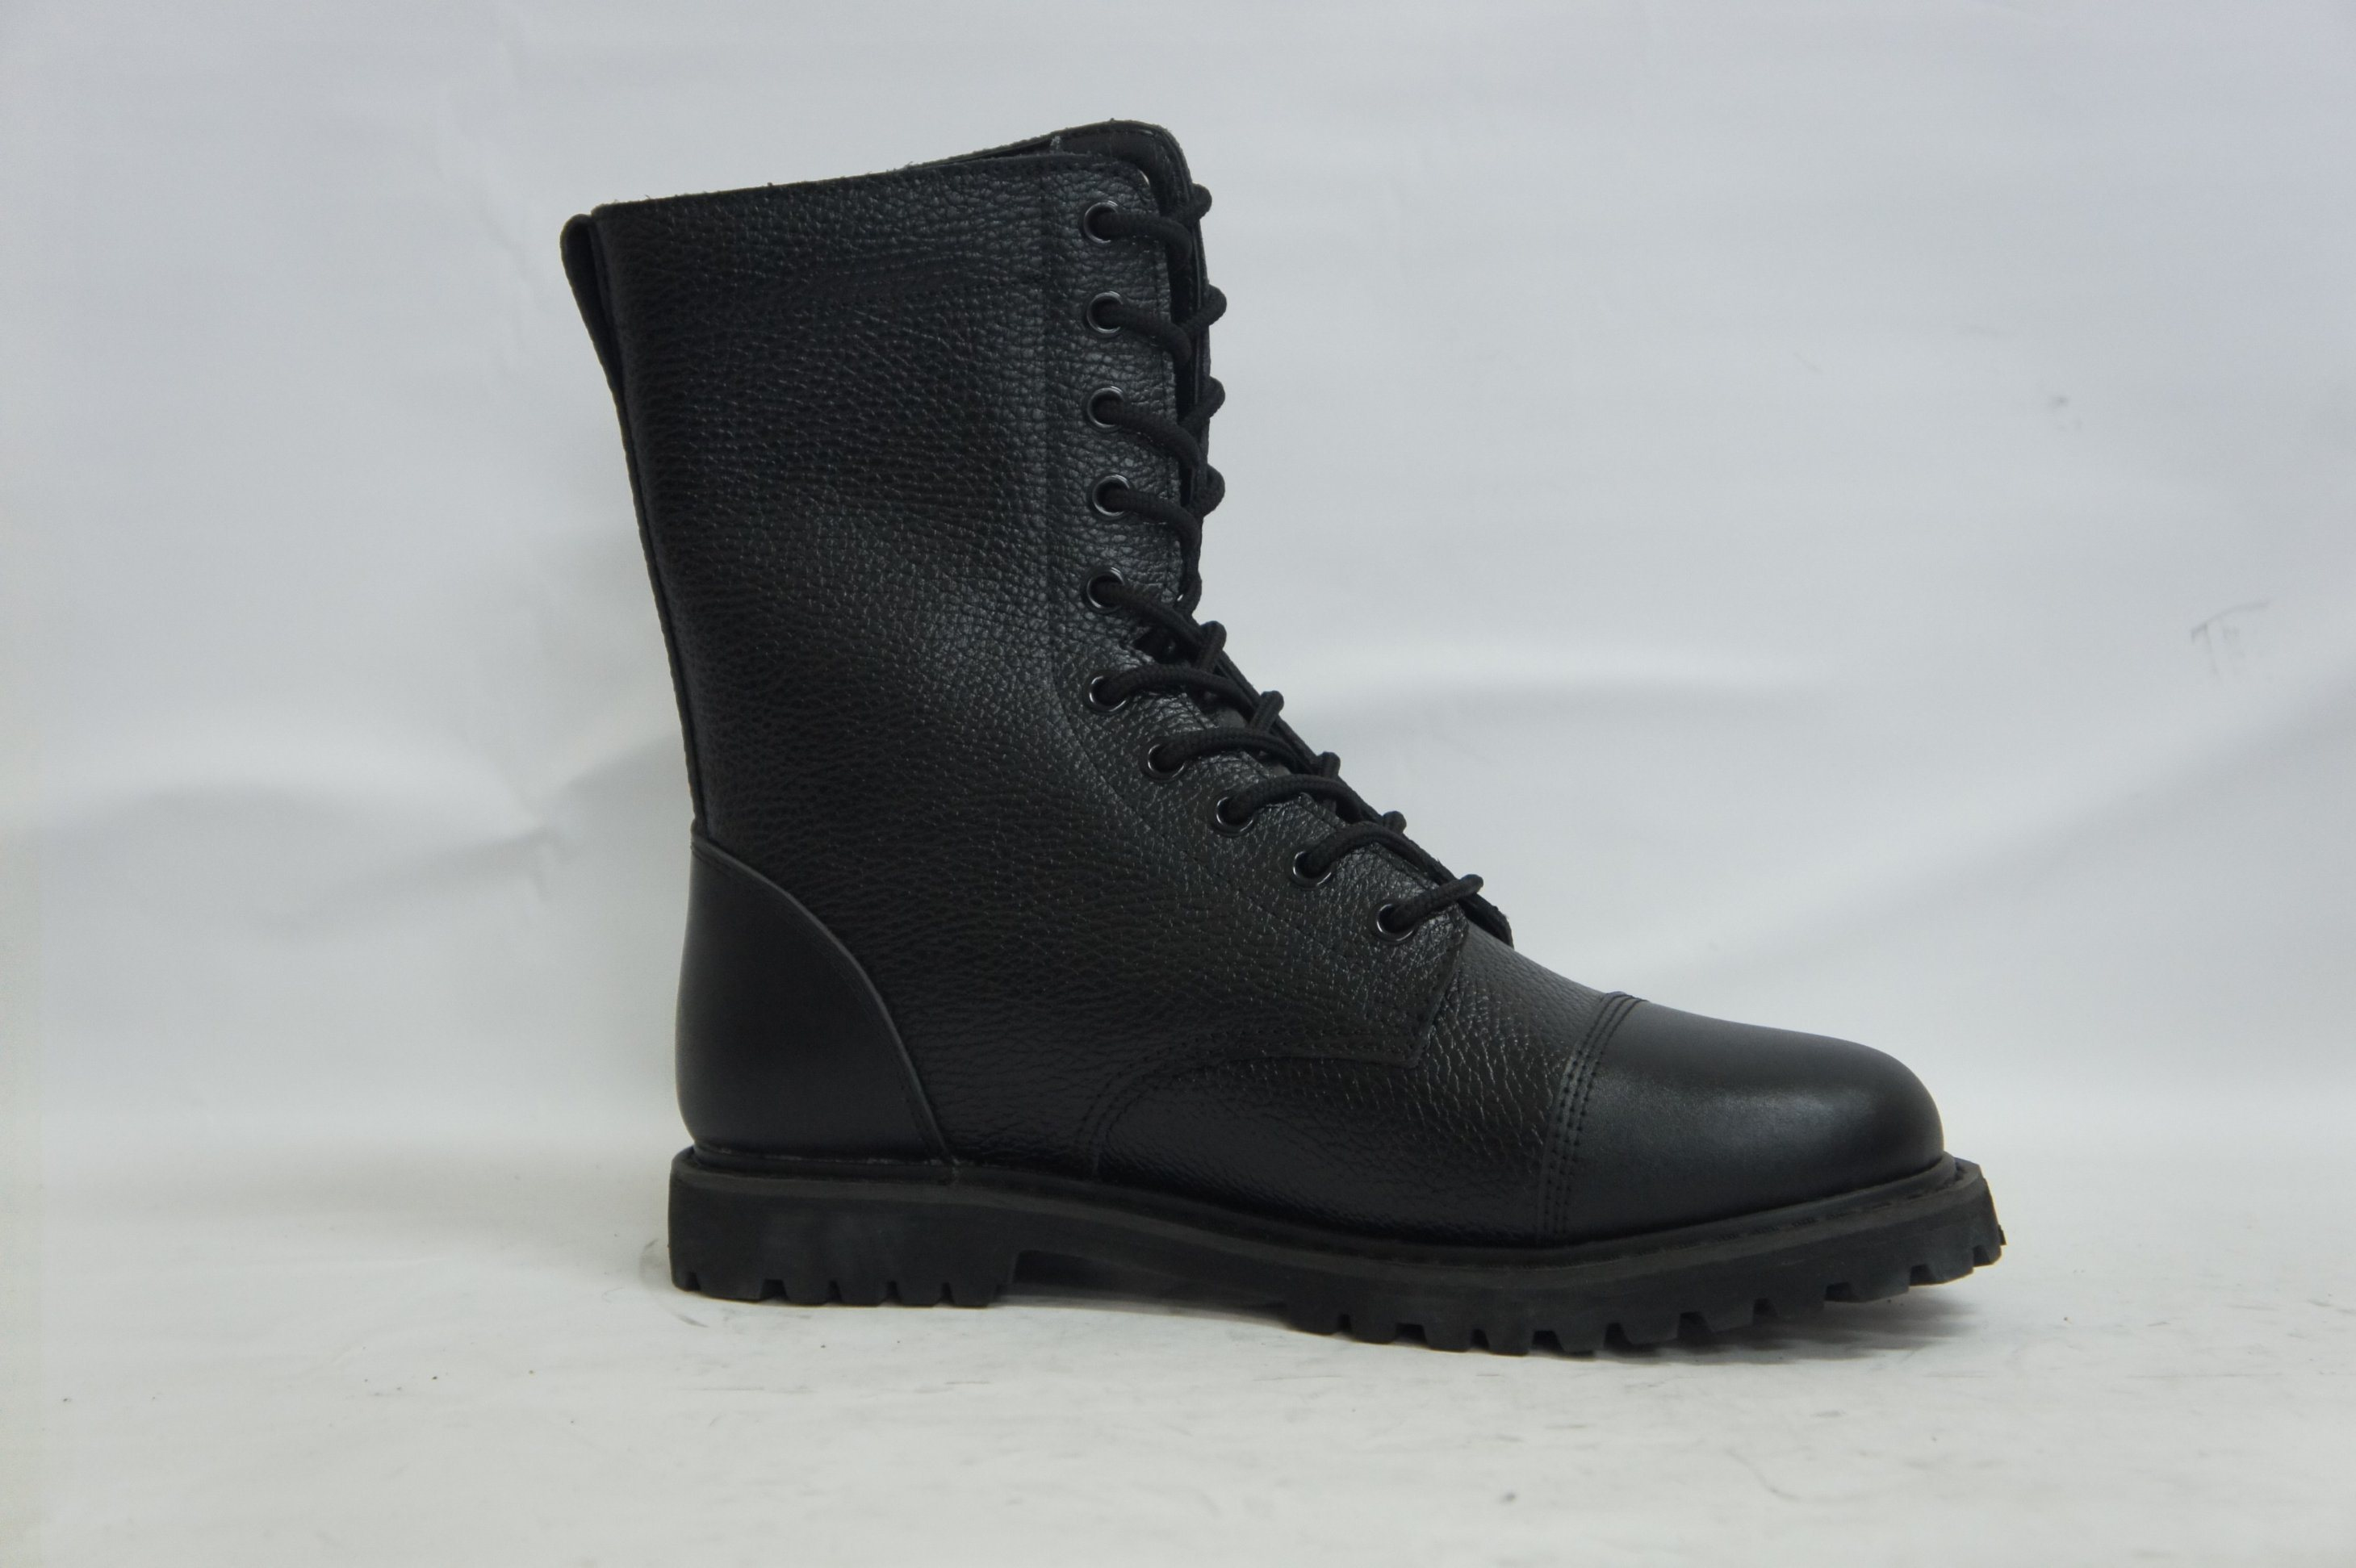 low cost fd075 88fda [Hot Item] Men′s Military Tactical Ultra-Light Combat Work Boots